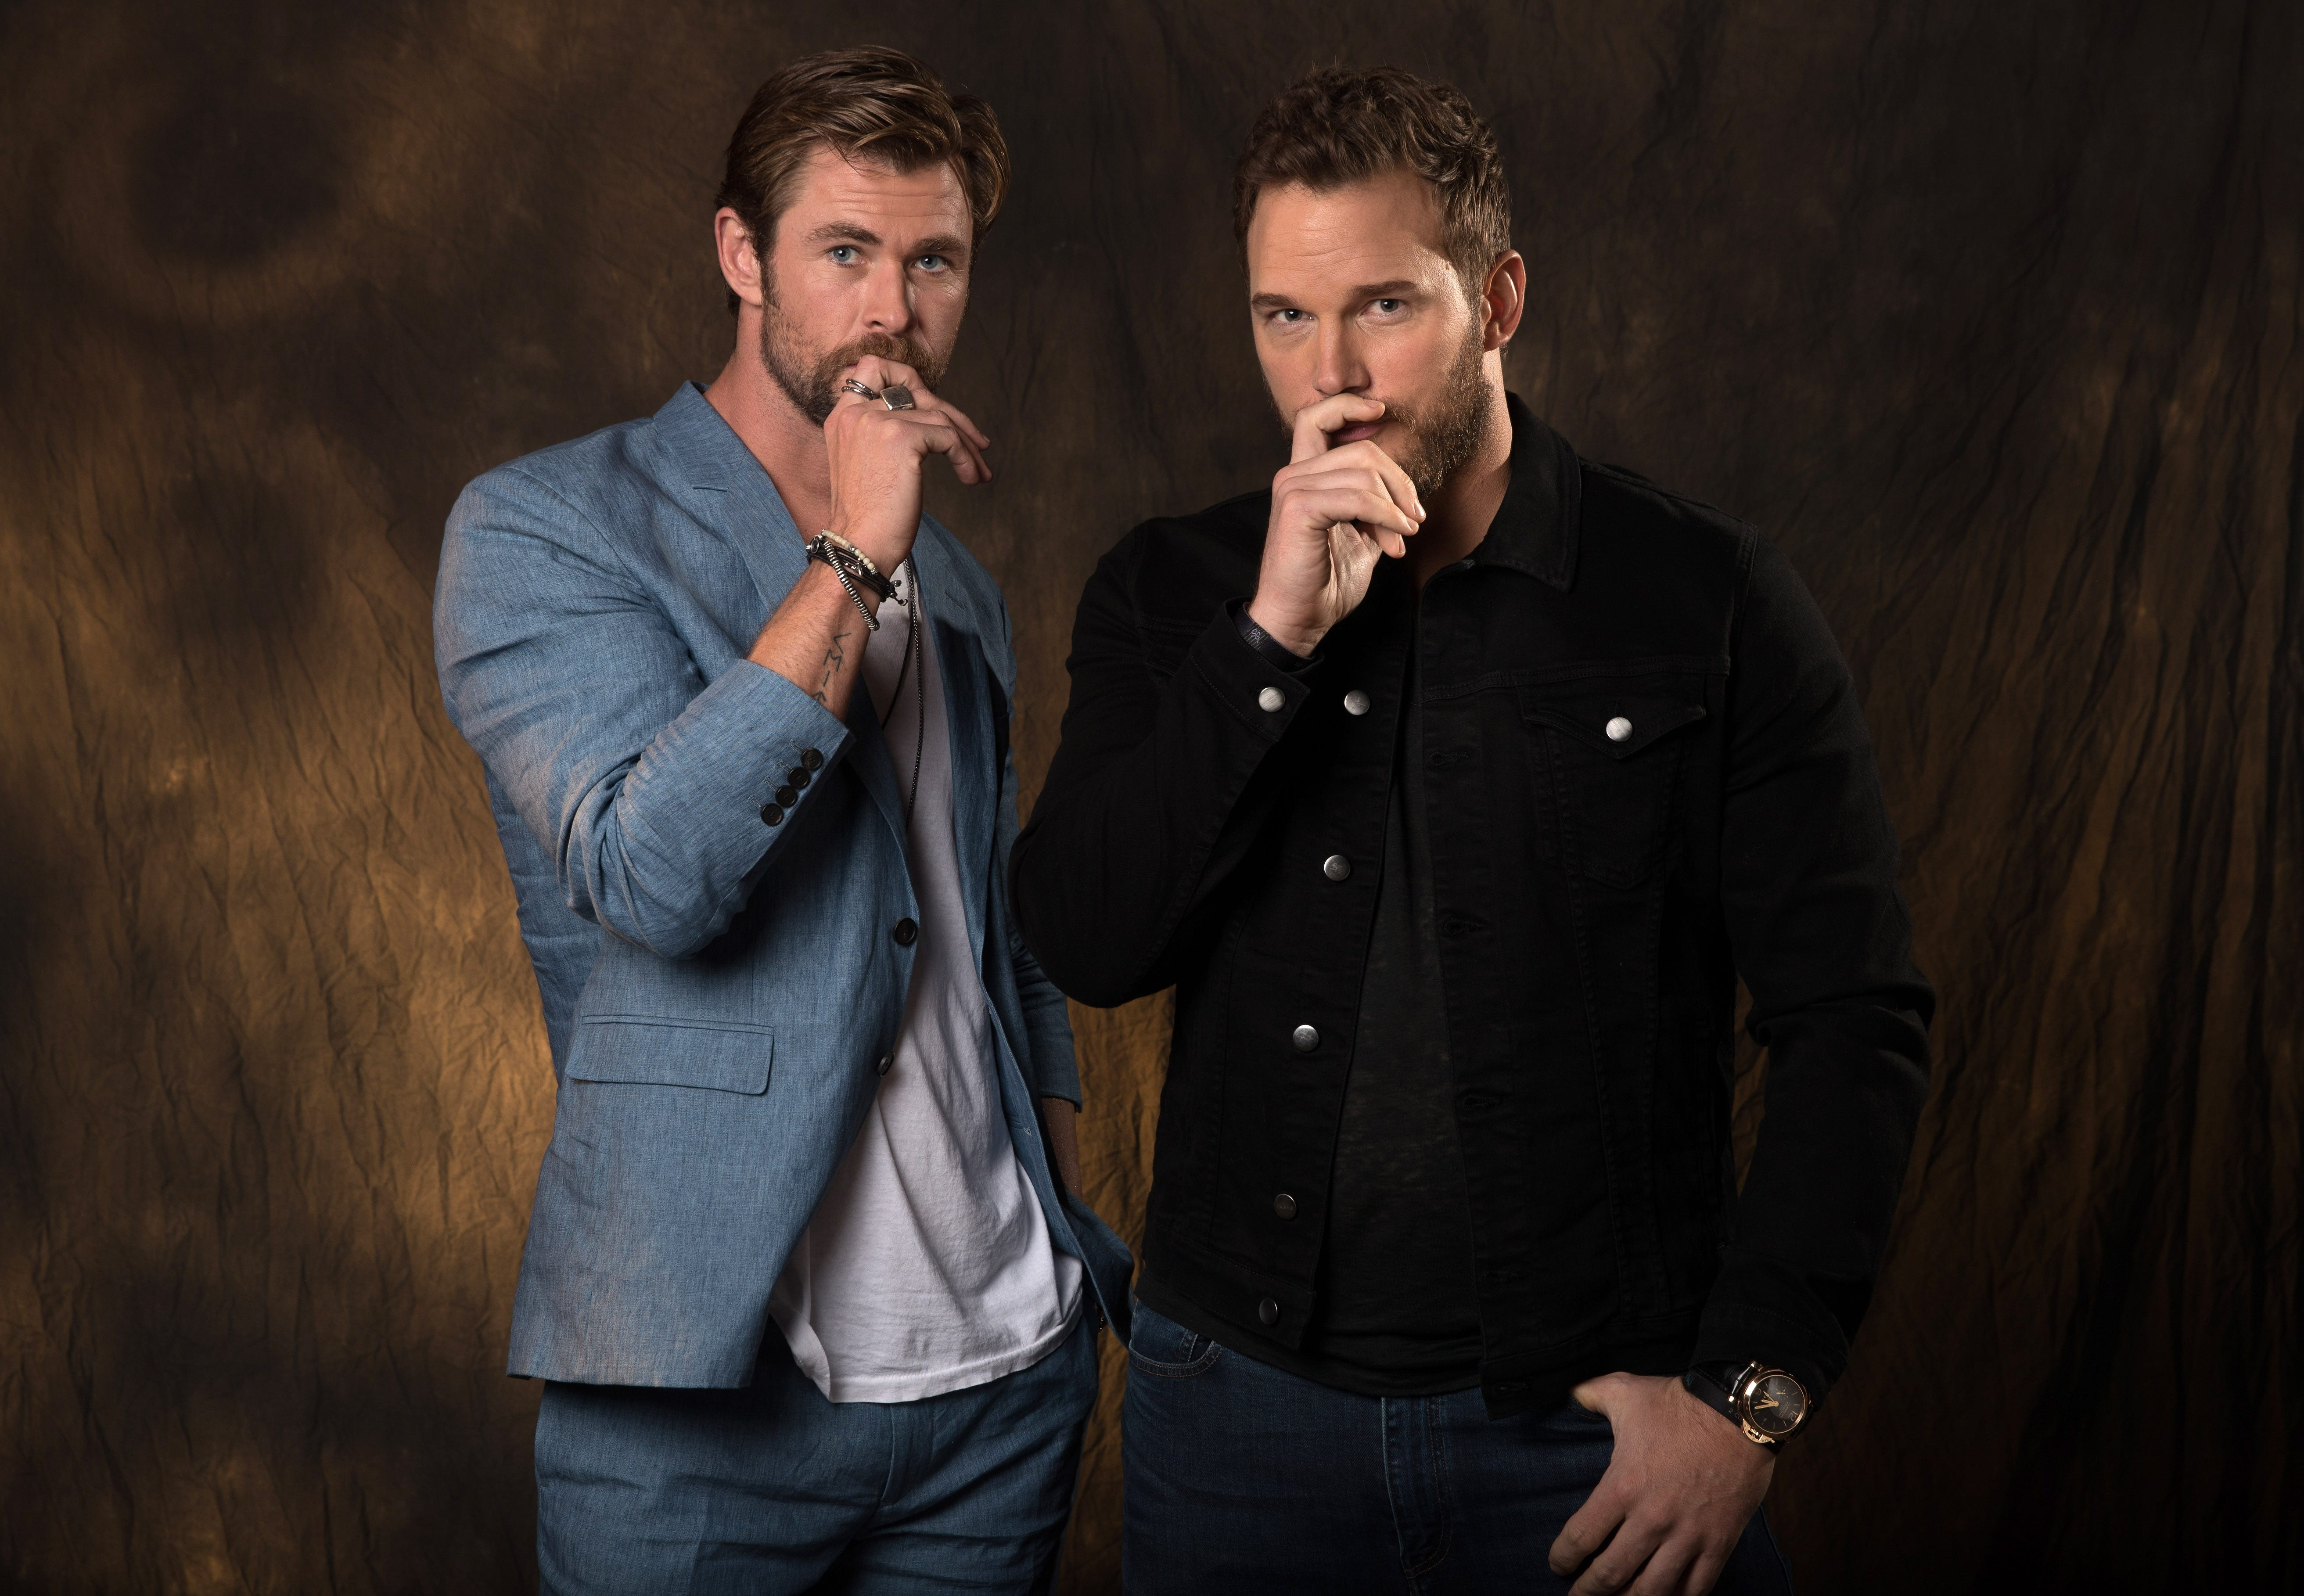 'Avengers: Infinity War': 'It's a great time to be a Chris' forHemsworth and Pratt